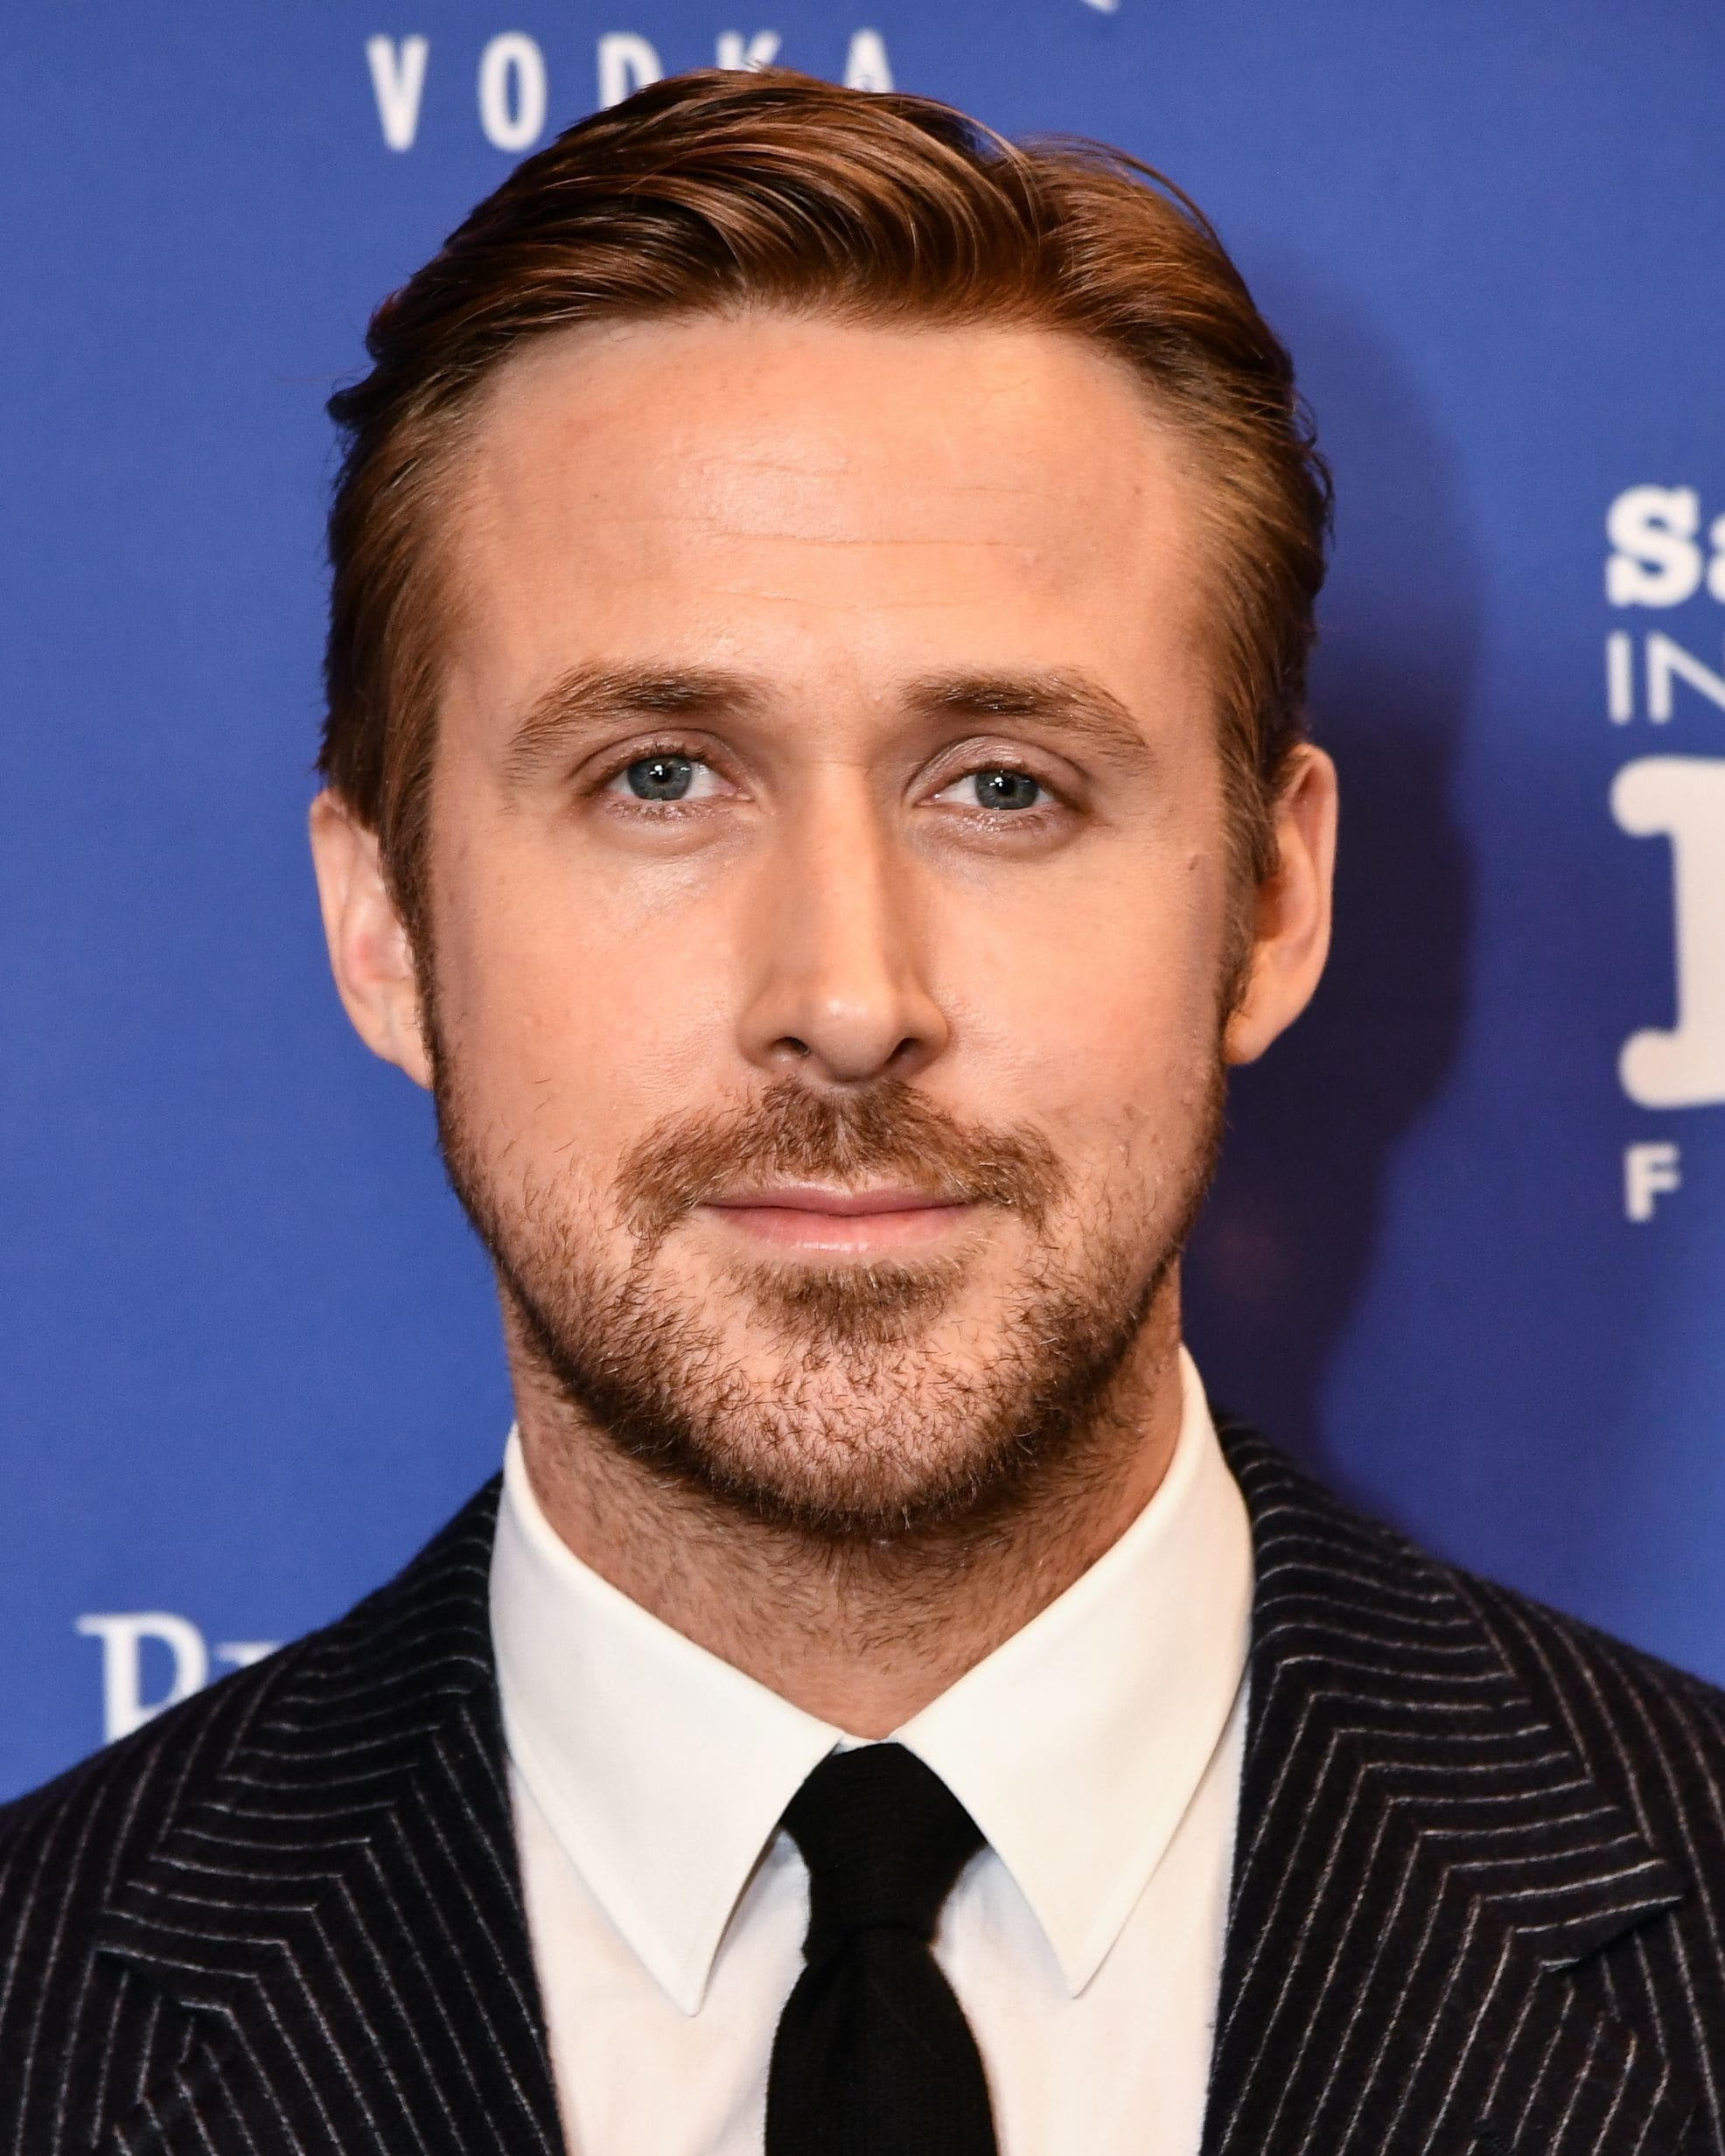 Ryan Gosling haircut: Ryan Gosling with an Ivy League haircut, wearing a suit